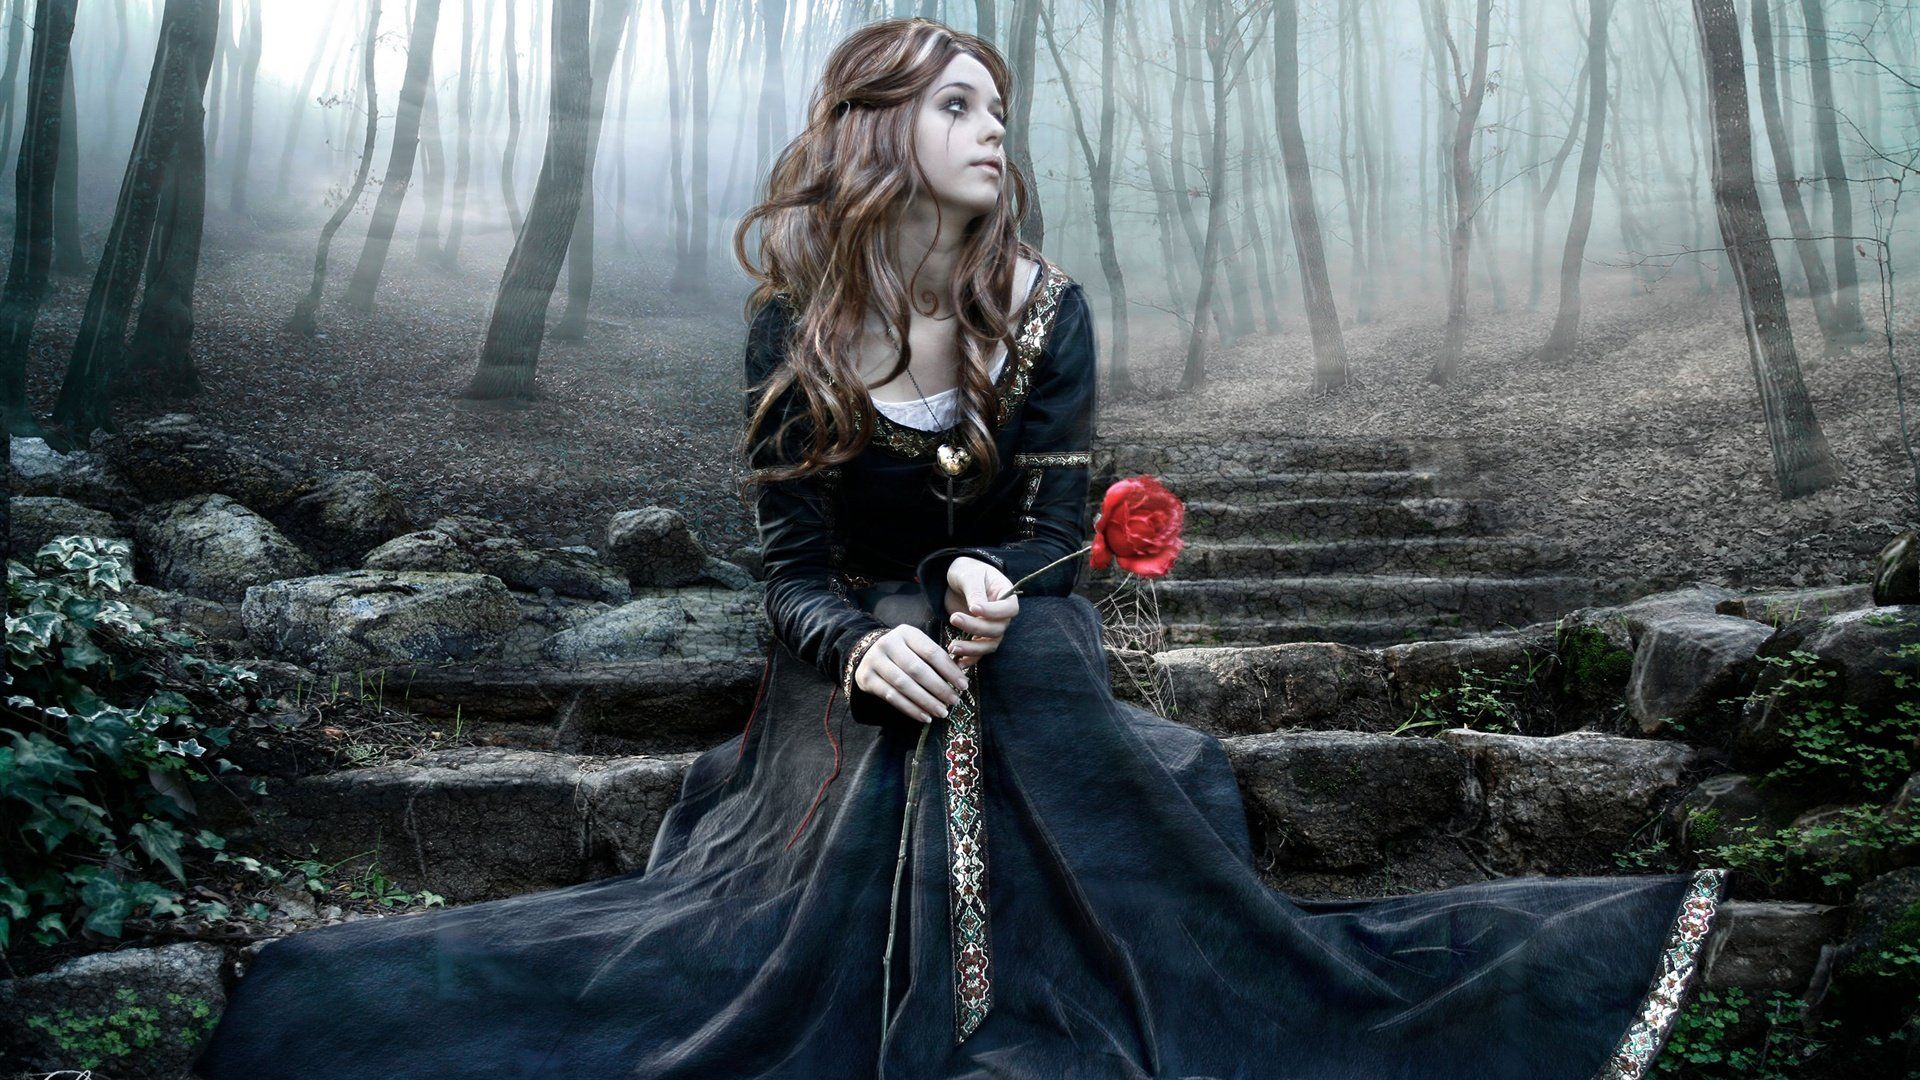 Foresi mobili ~ Wallpaper wallpapers girl artistic gothic woods goodfon image wolf